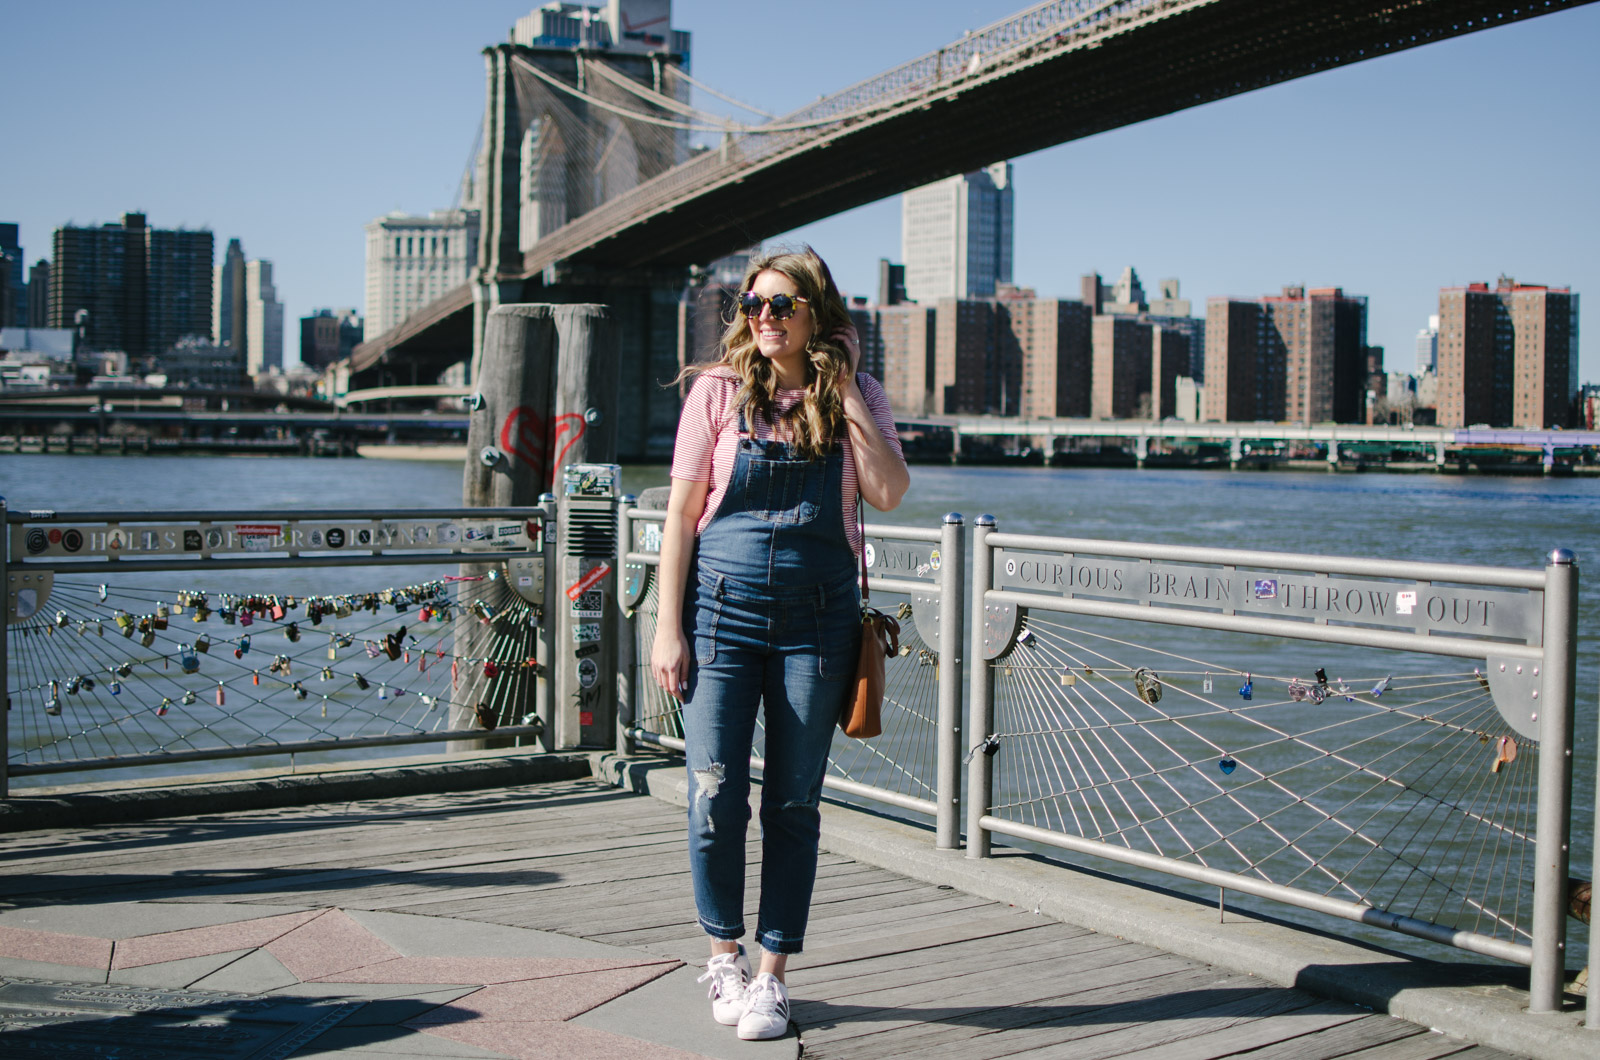 maternity overalls outfit - maternity overalls in nyc bylaurenm.com